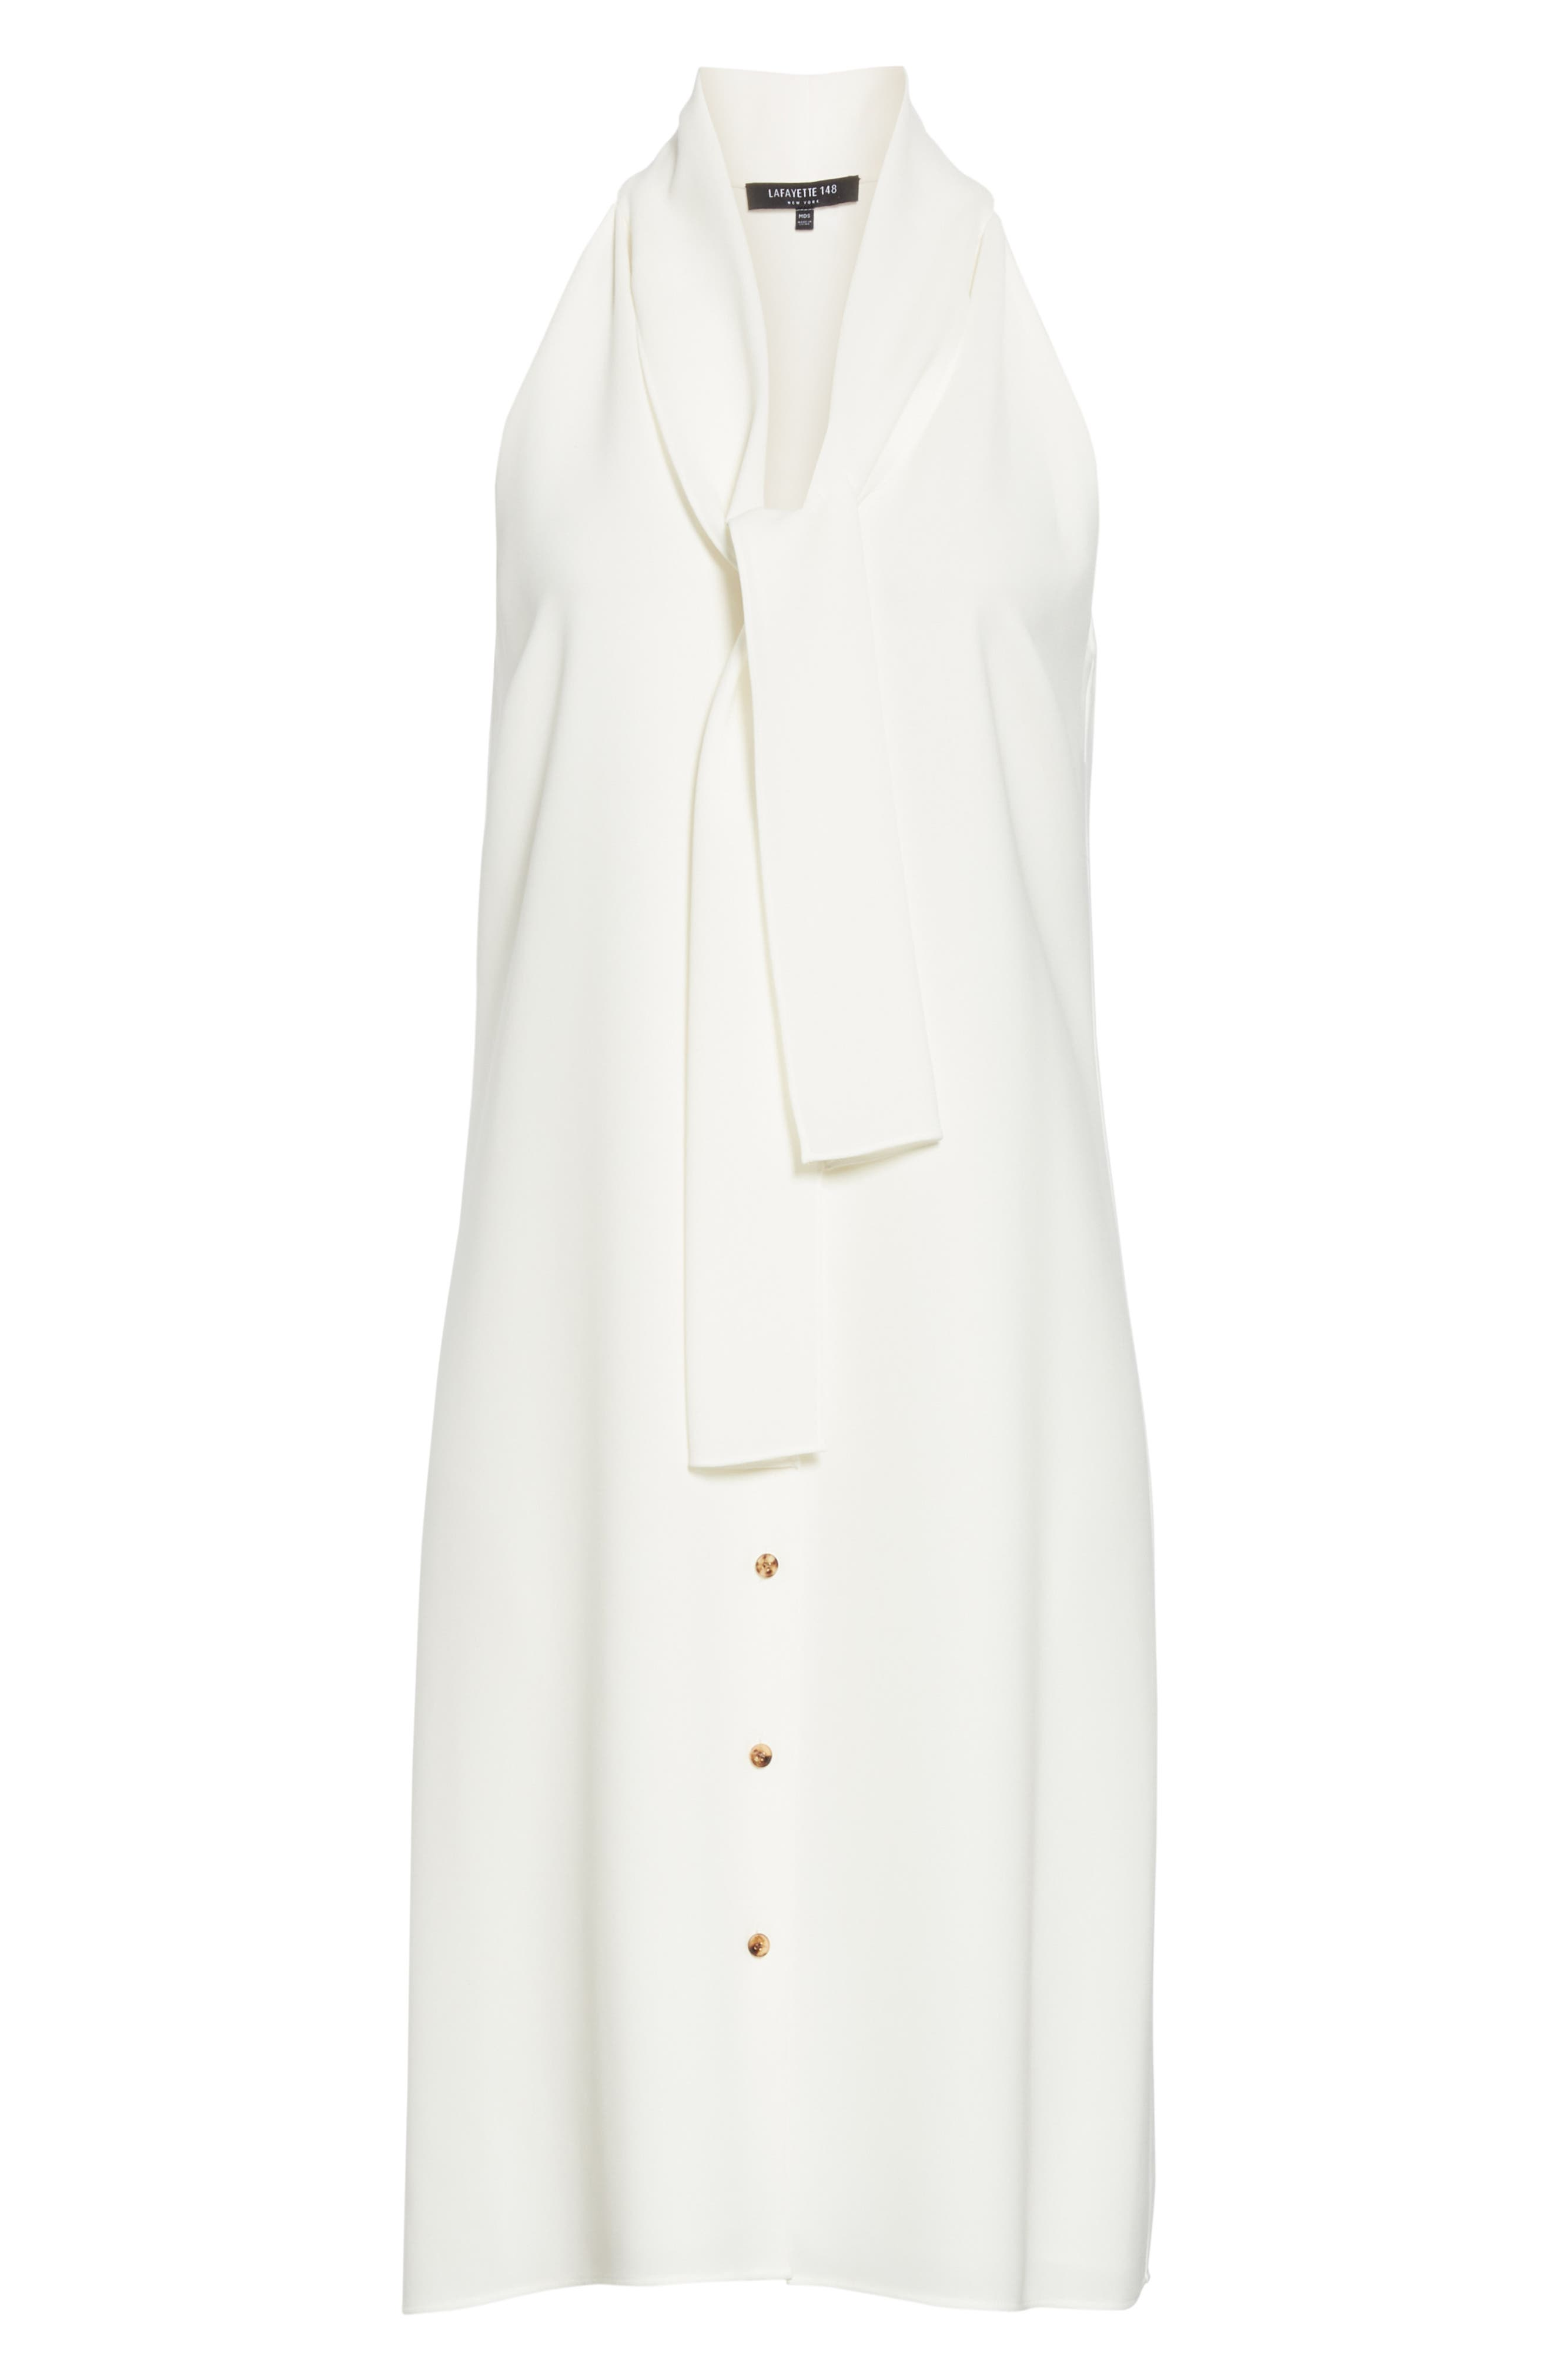 LAFAYETTE 148 NEW YORK, Amore Finesse Crepe Dress, Alternate thumbnail 7, color, CLOUD